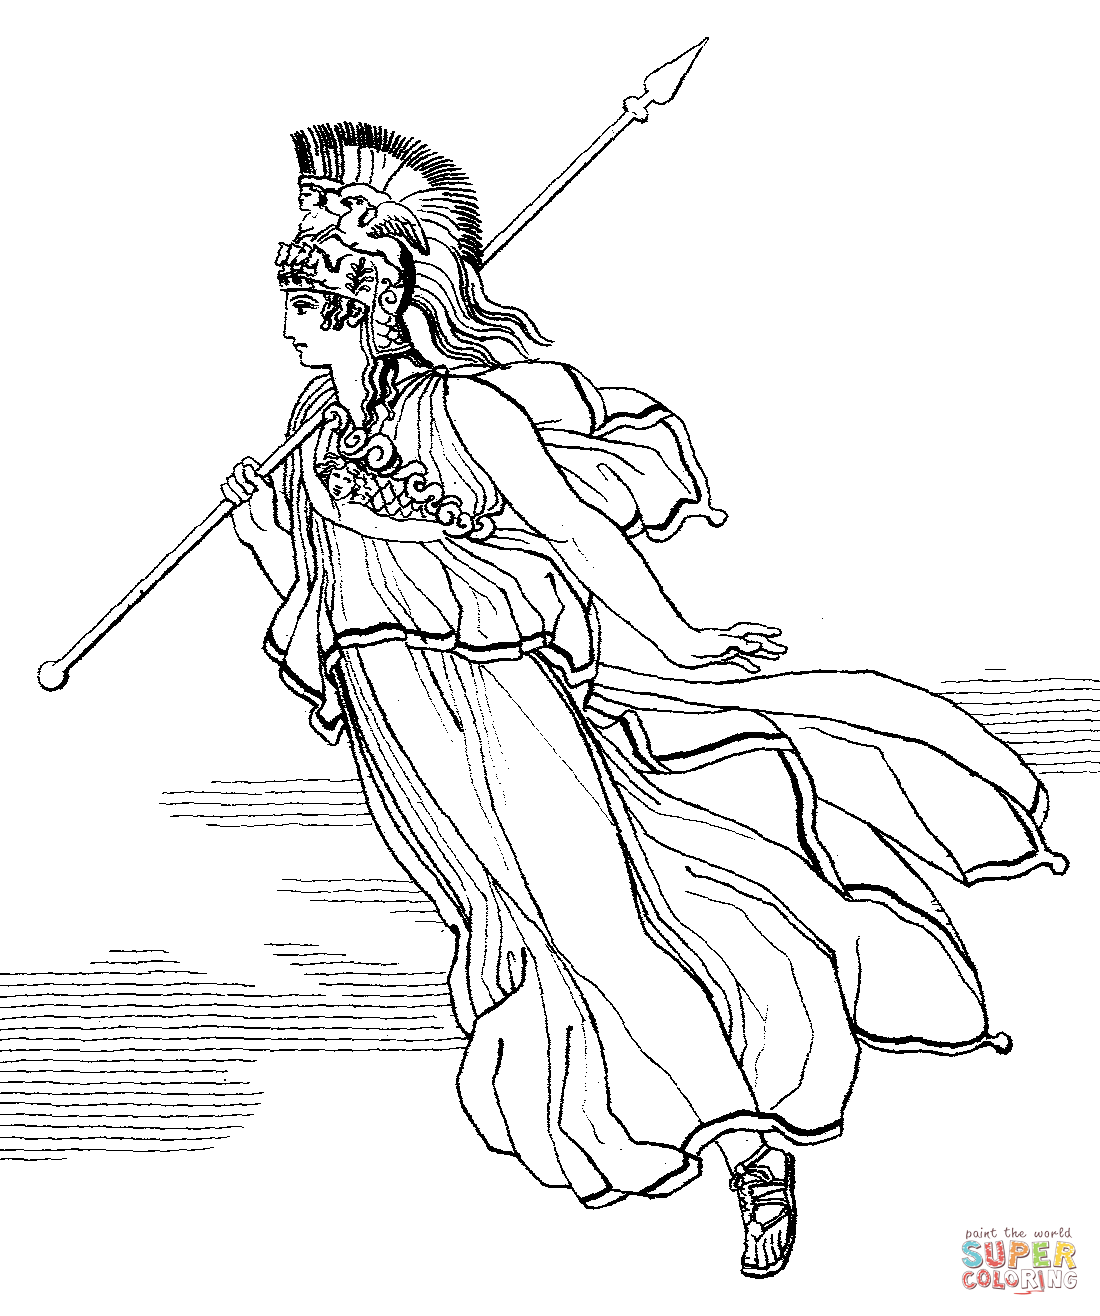 Athena With Spear Coloring Page